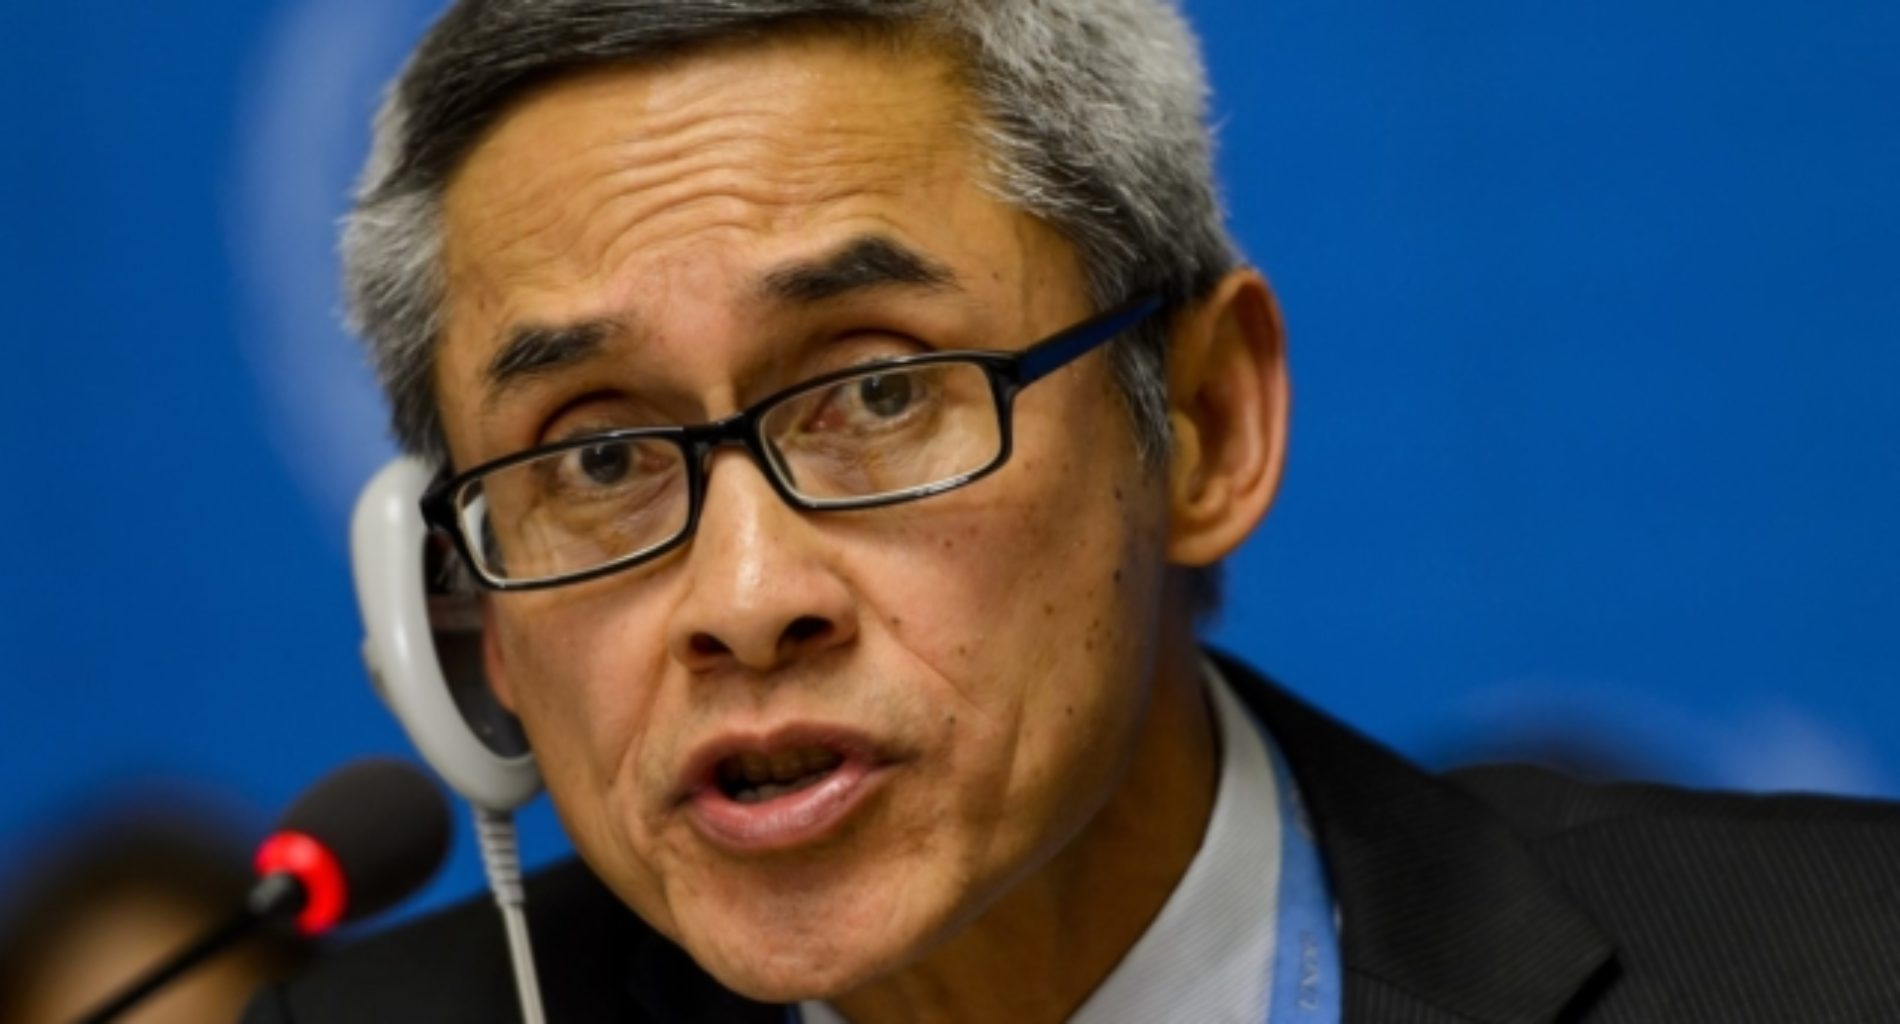 United Nations LGBT Rights Expert warns of 'global crisis' as homophobic crackdowns continue